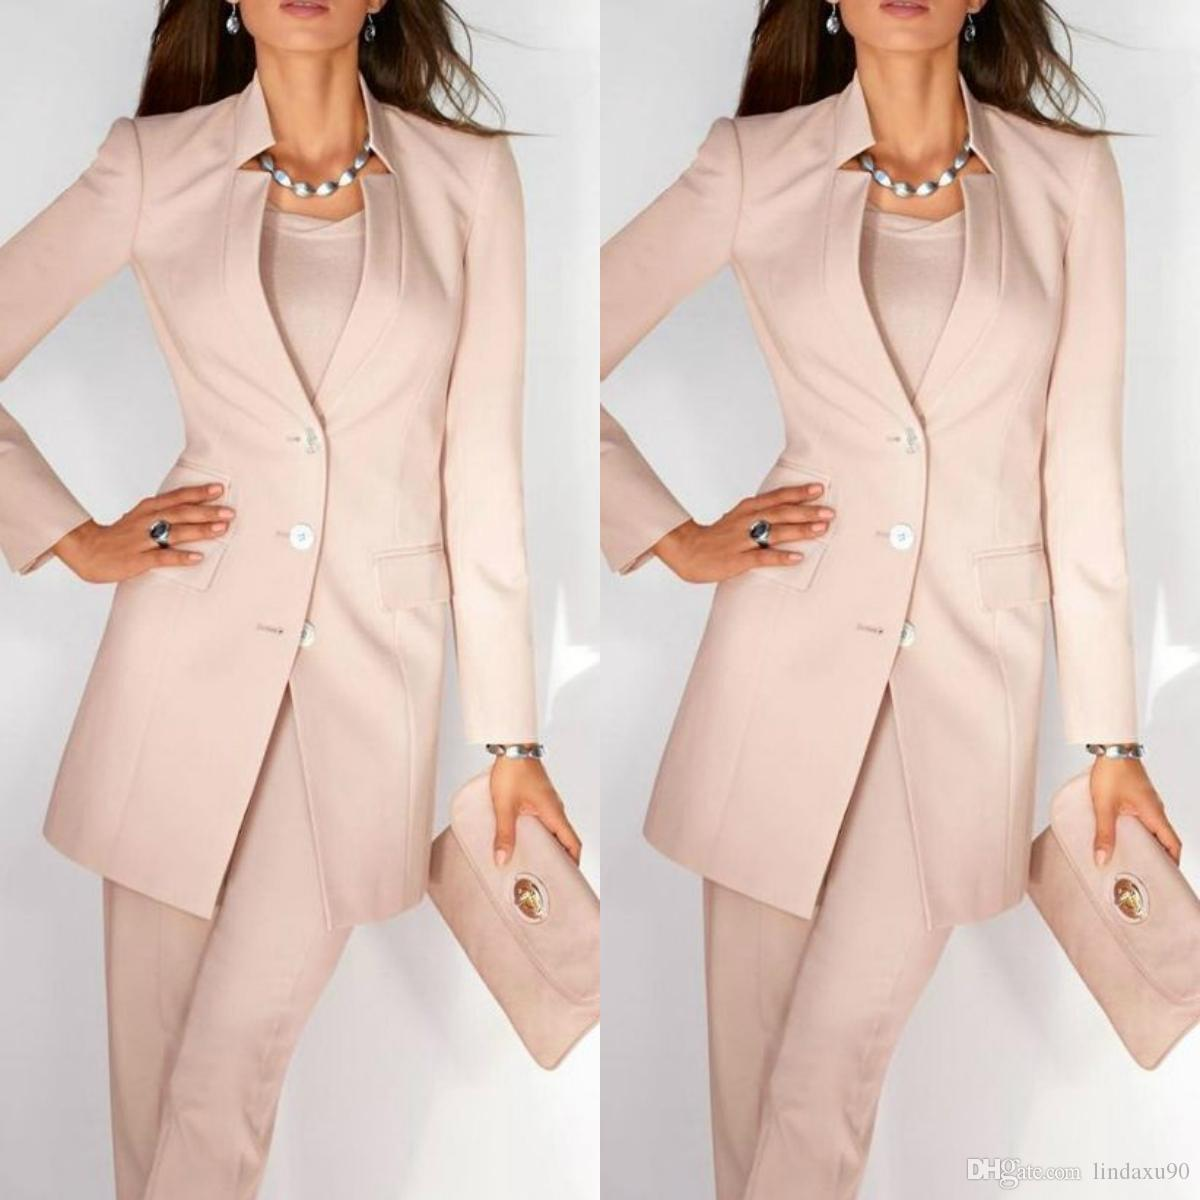 Pink Women Ladies Mother of the Bride Dresses Office Tuxedos Fashion Work Pant Suits Wedding Evening Party Formal Gown With Jacket